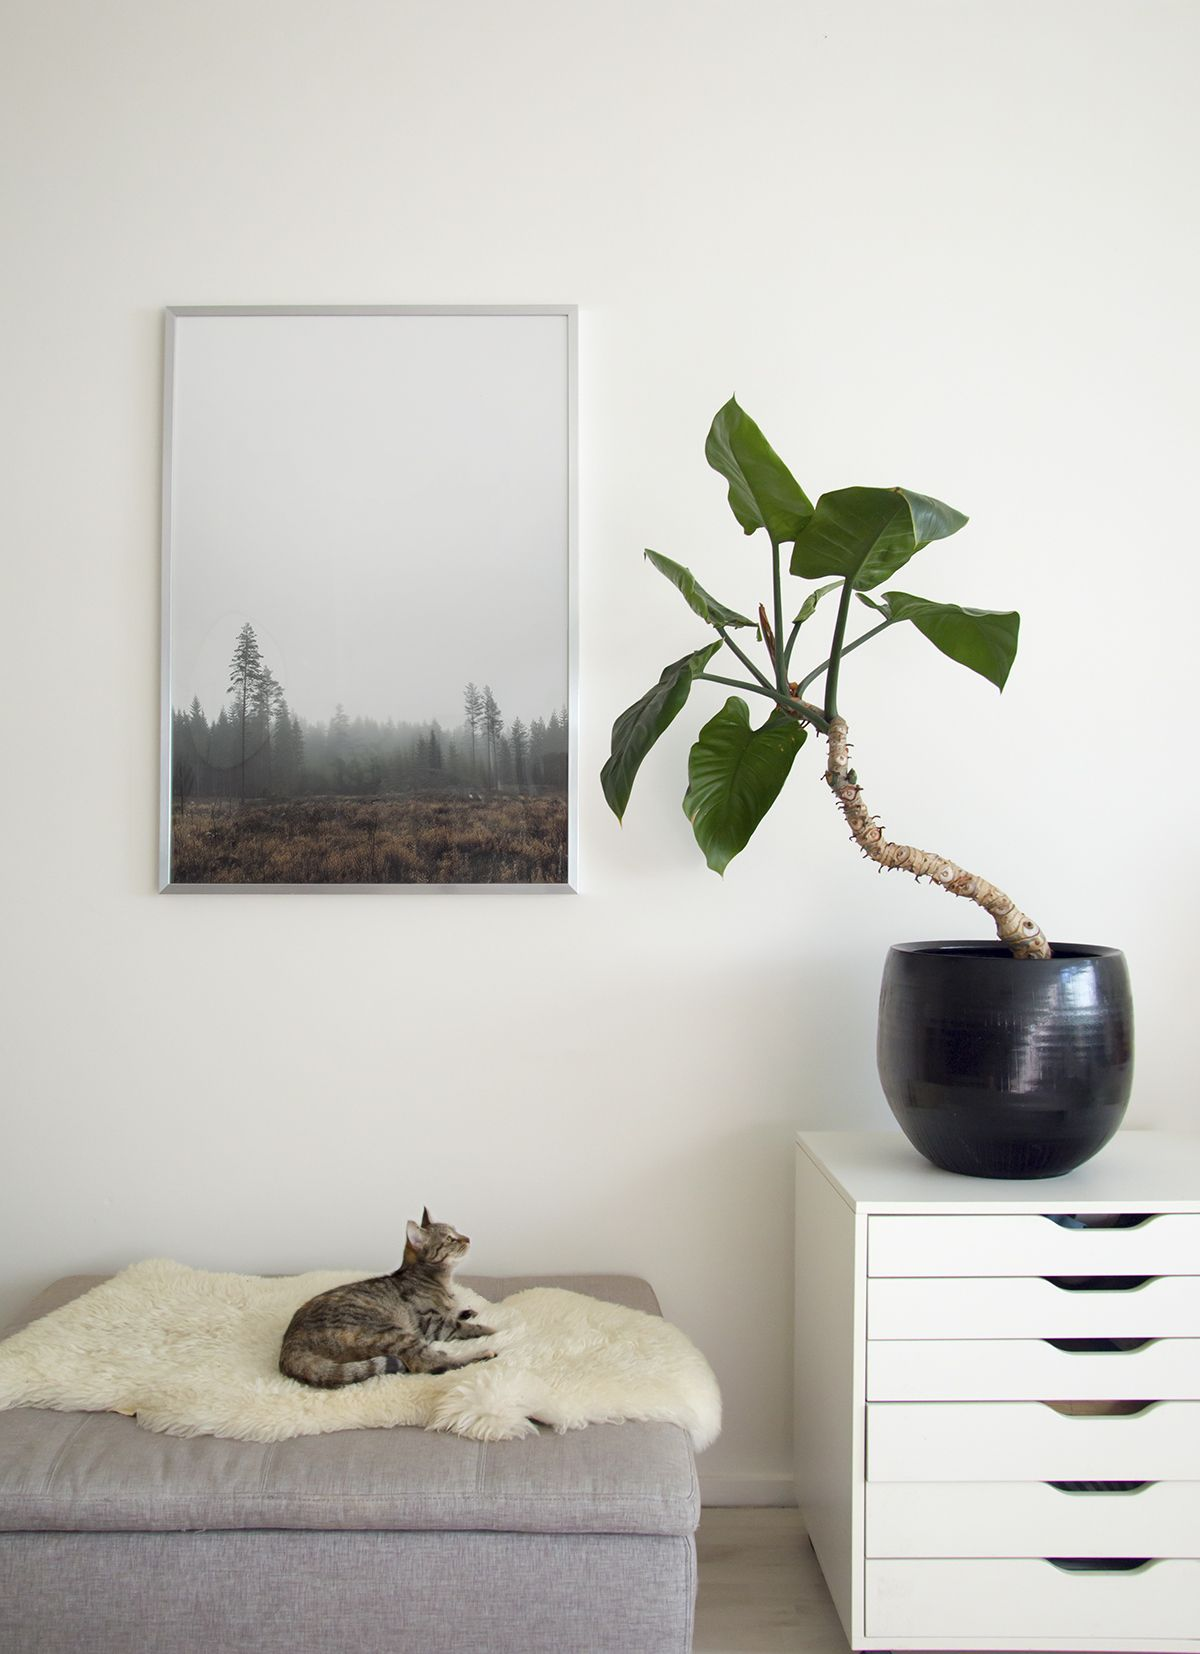 Urban Jungle Bloggers Plants & Art By @Jtdesignnl